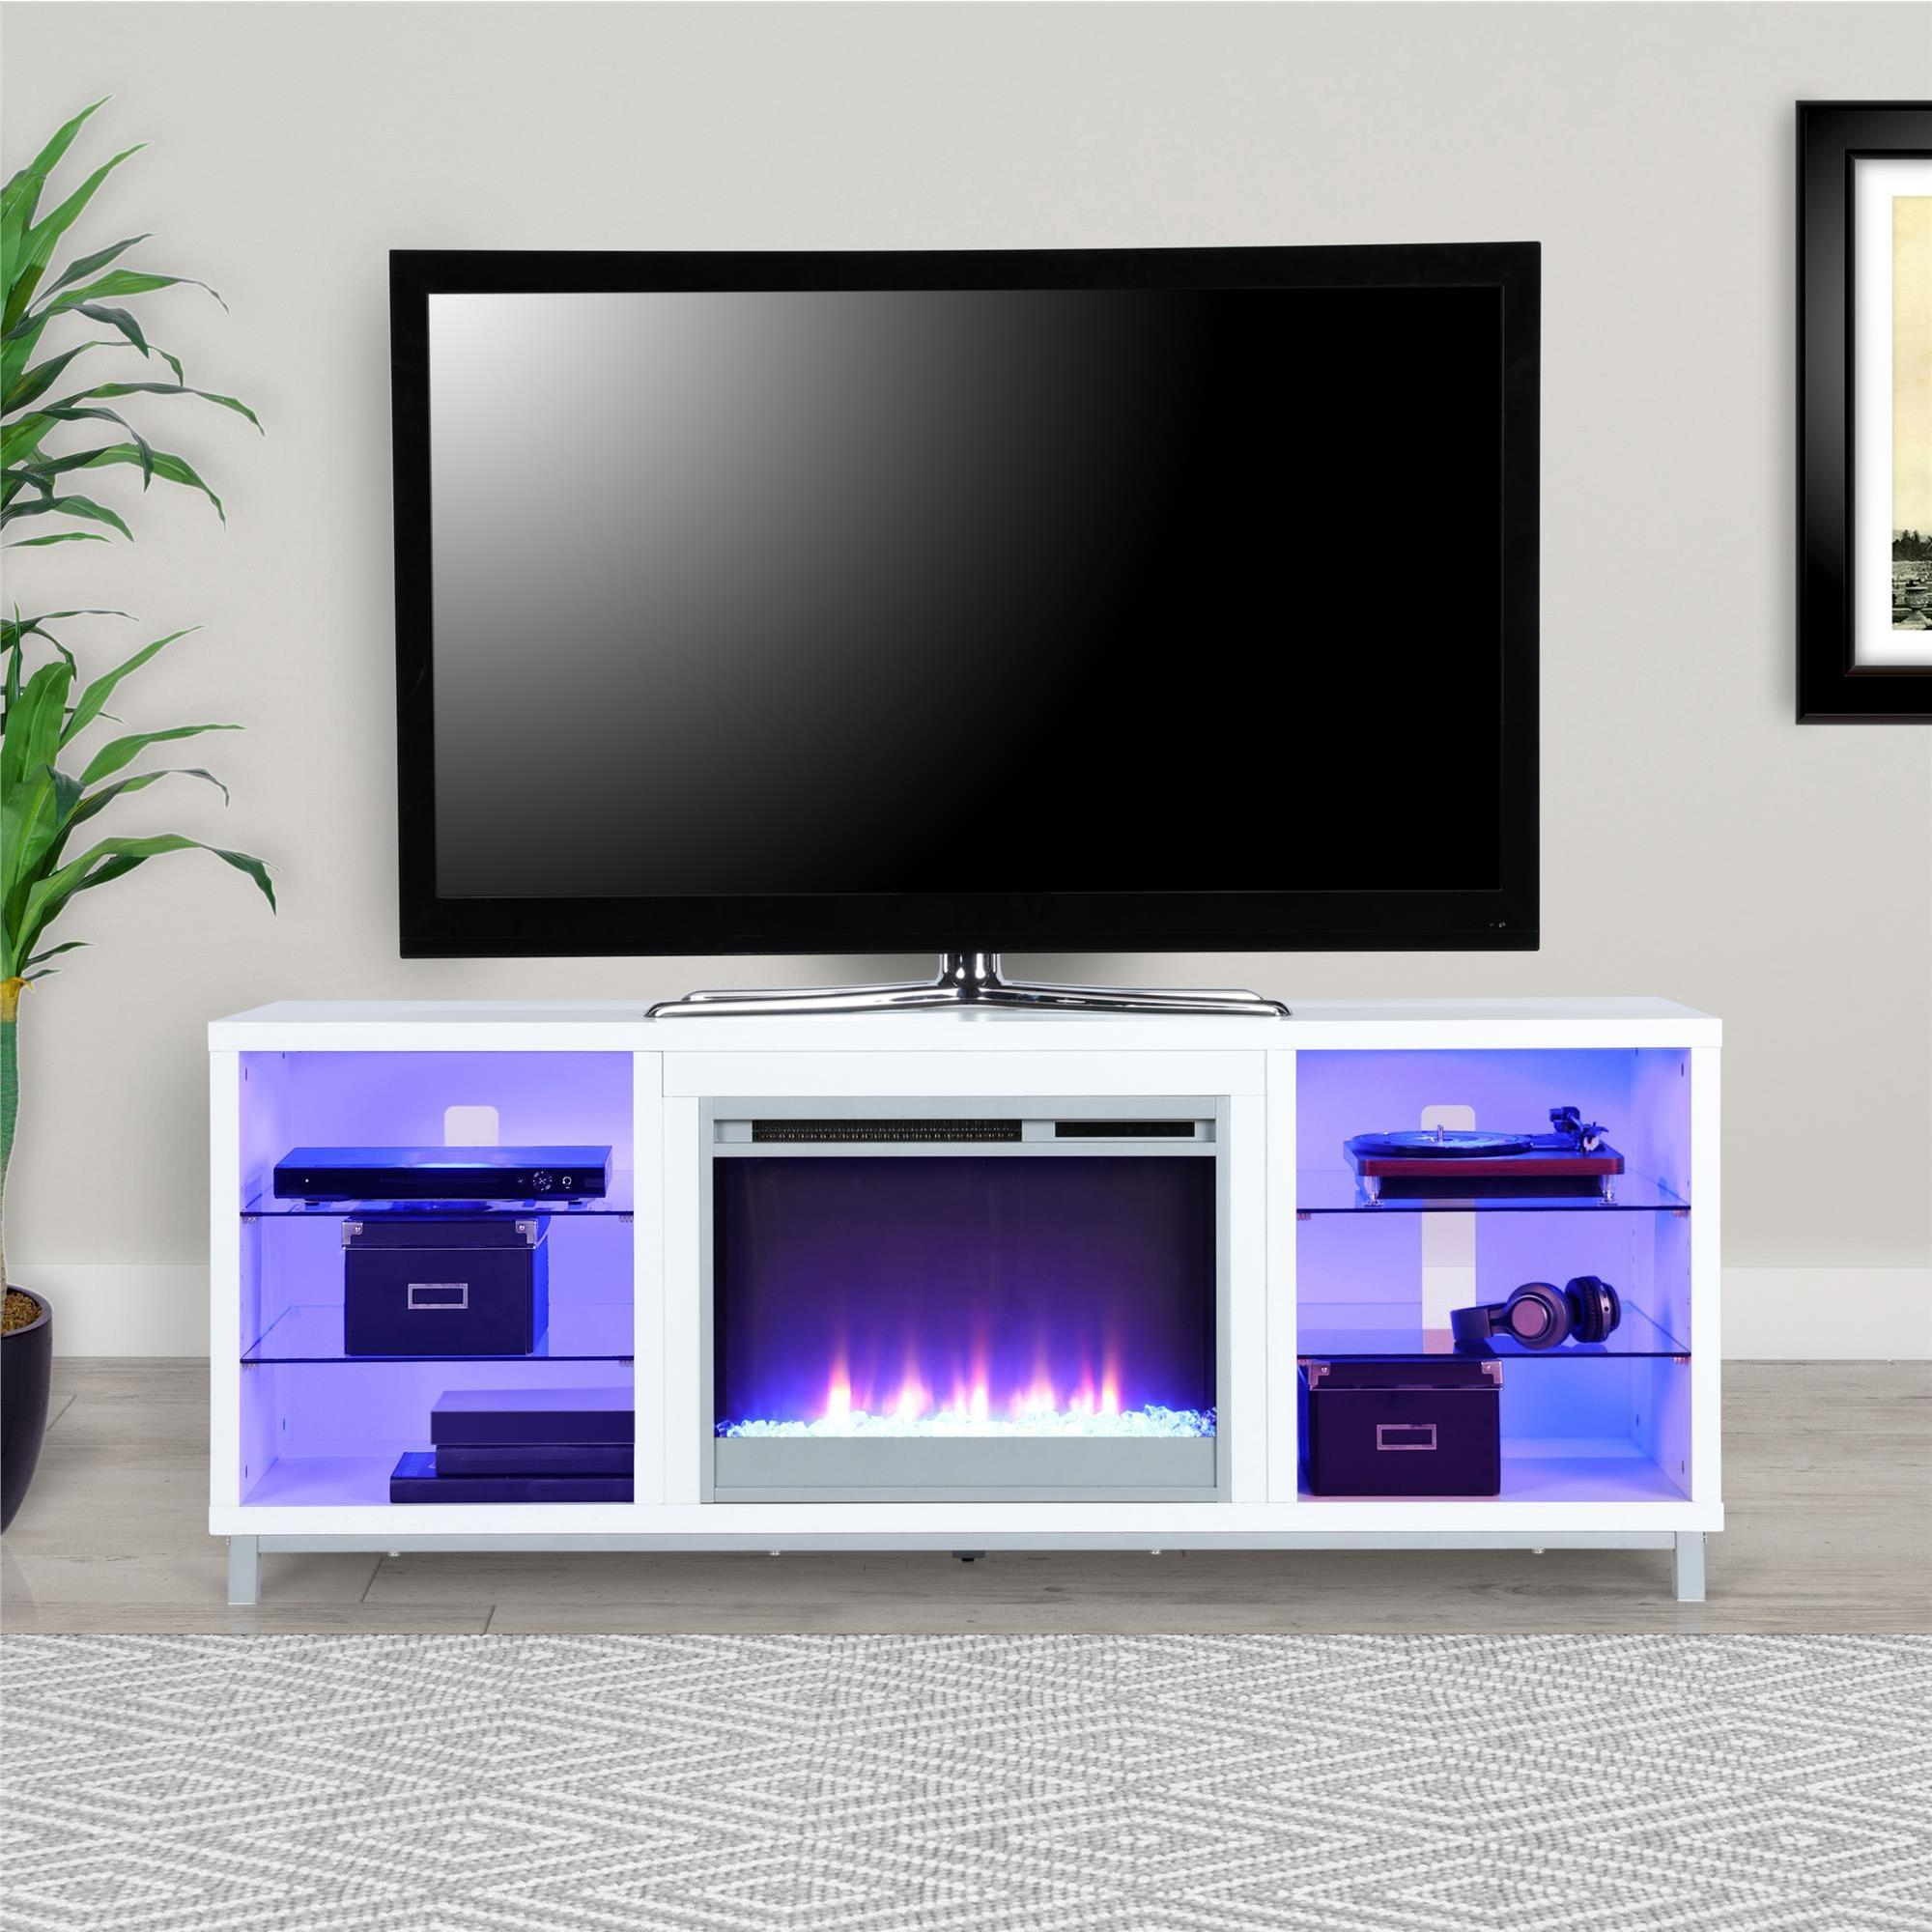 Shop Avenue Greene Westwood Fireplace Tv Stand For Tvs Up To 70 Within Laurent 70 Inch Tv Stands (View 17 of 30)